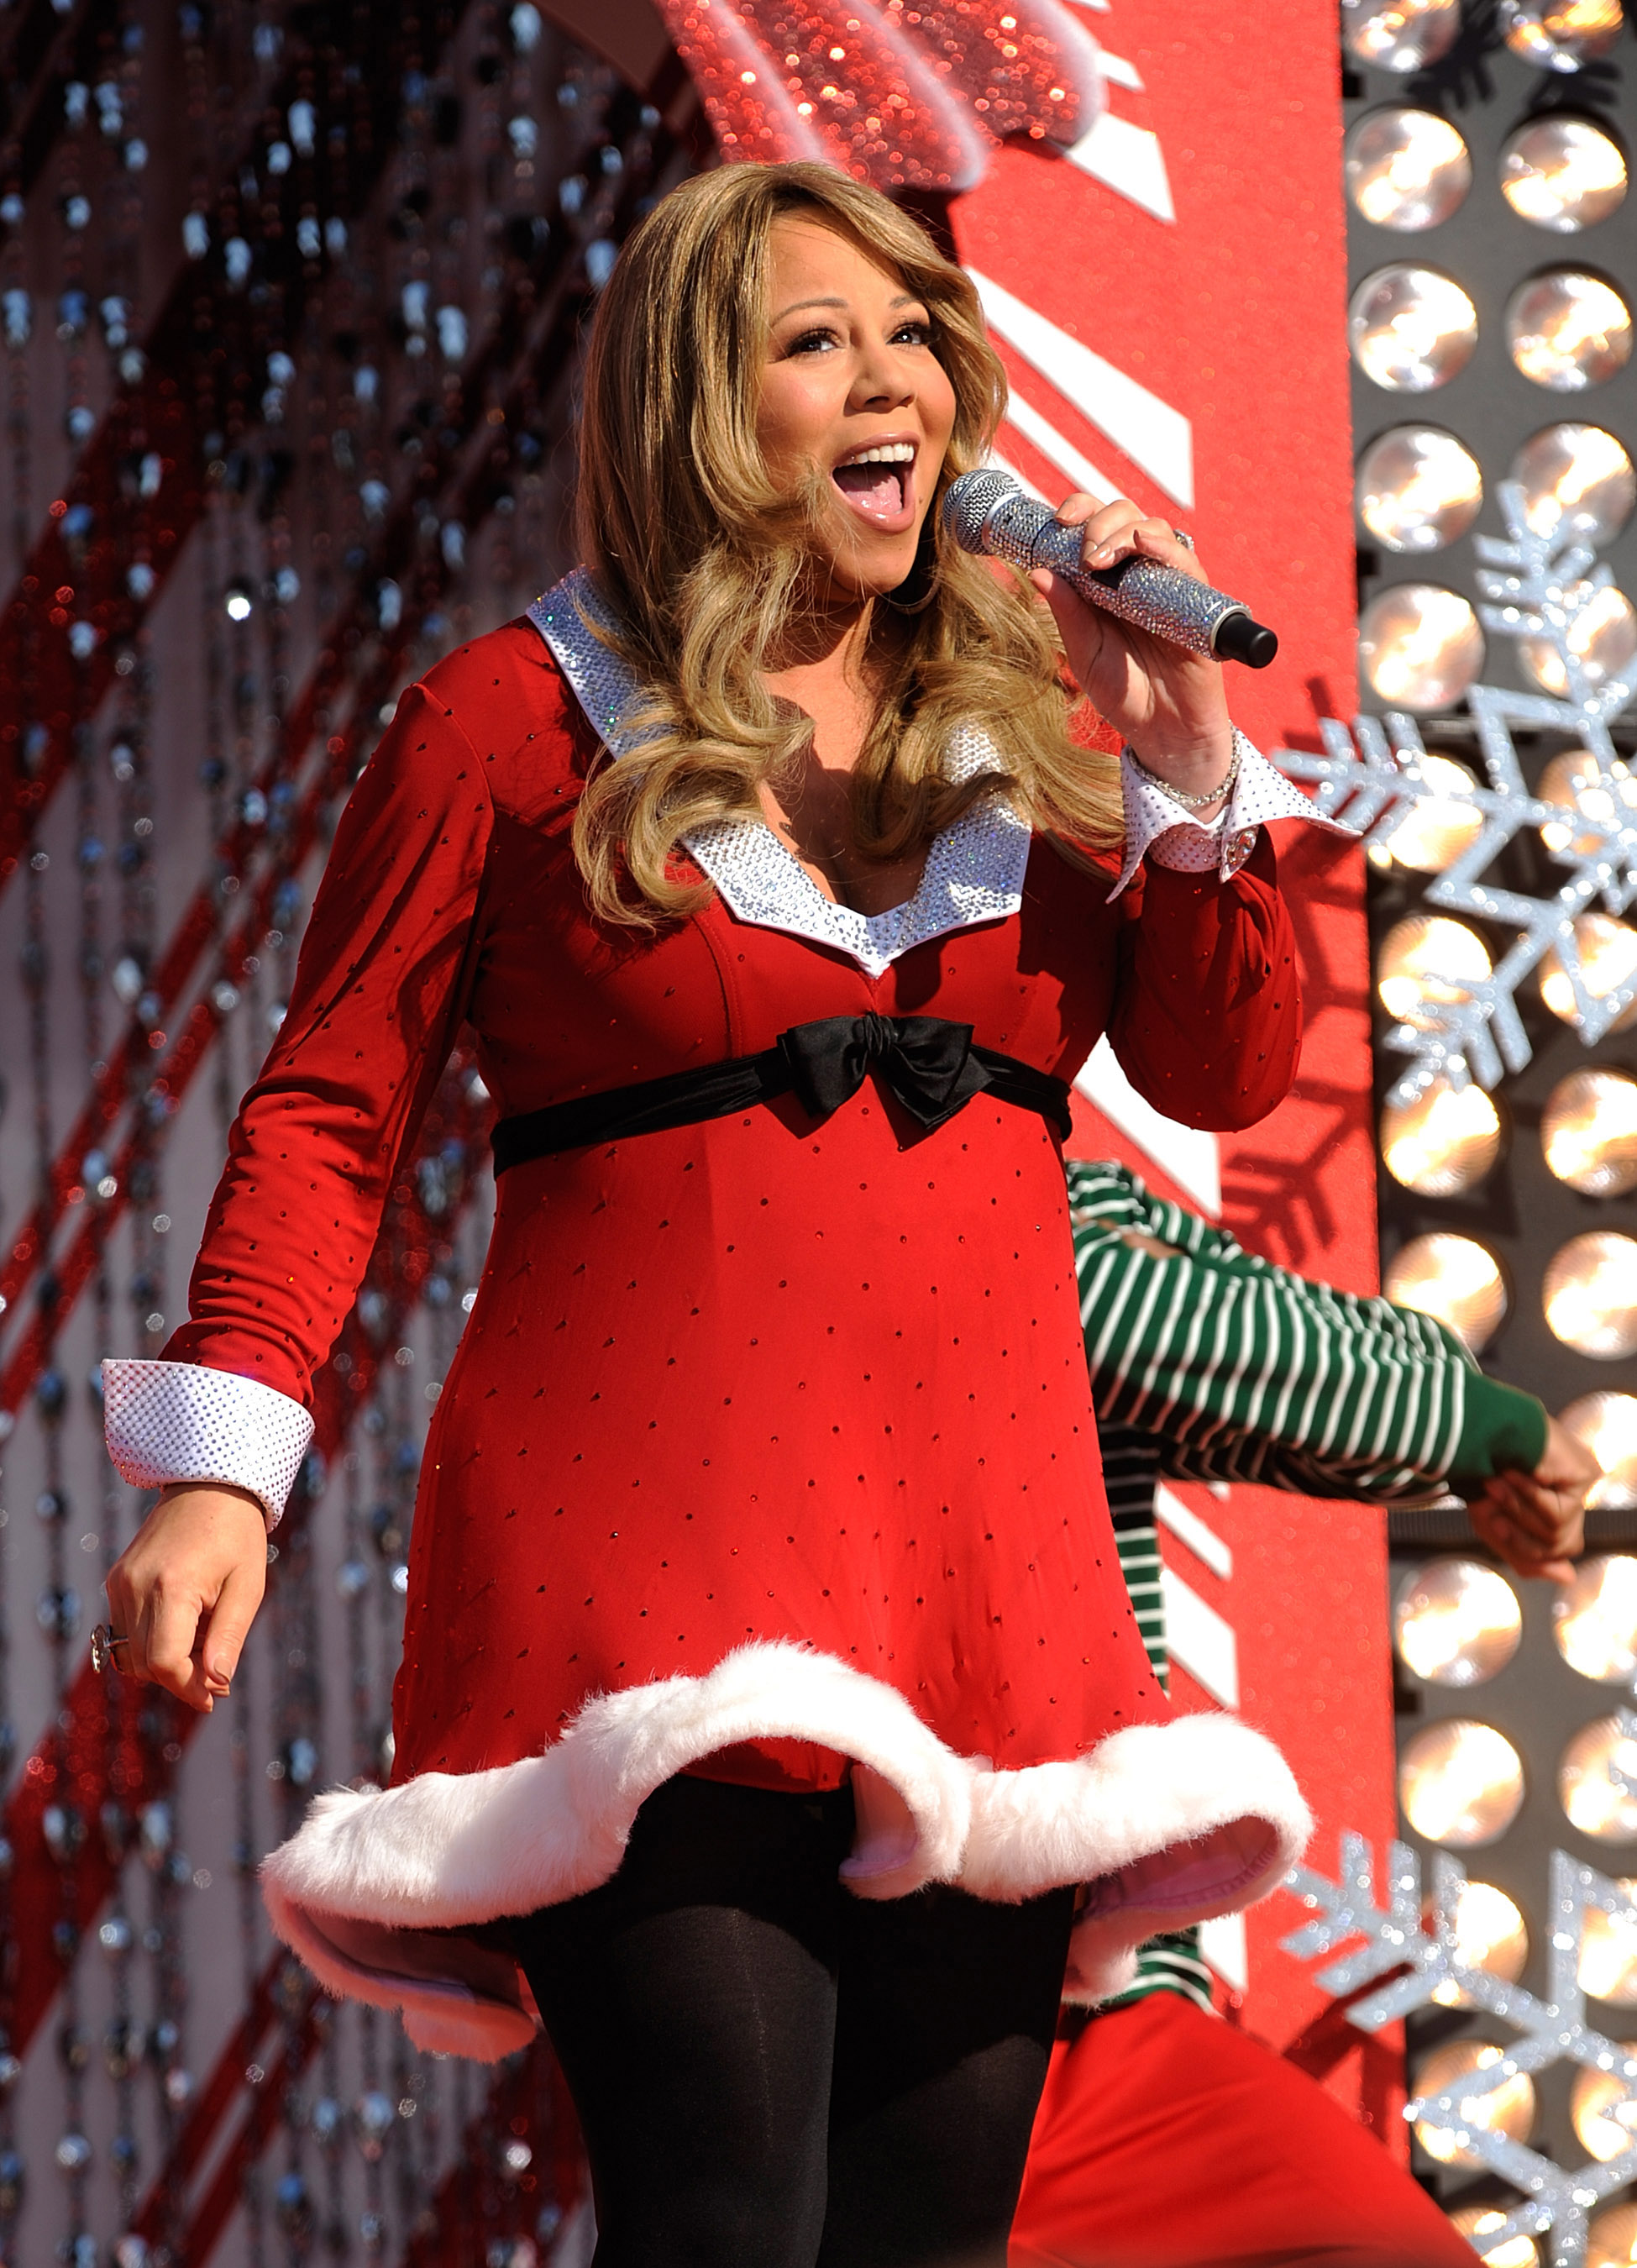 24 stages of hearing mariah careys all i want for christmas is you on repeat every holiday season - What Does My Wife Want For Christmas